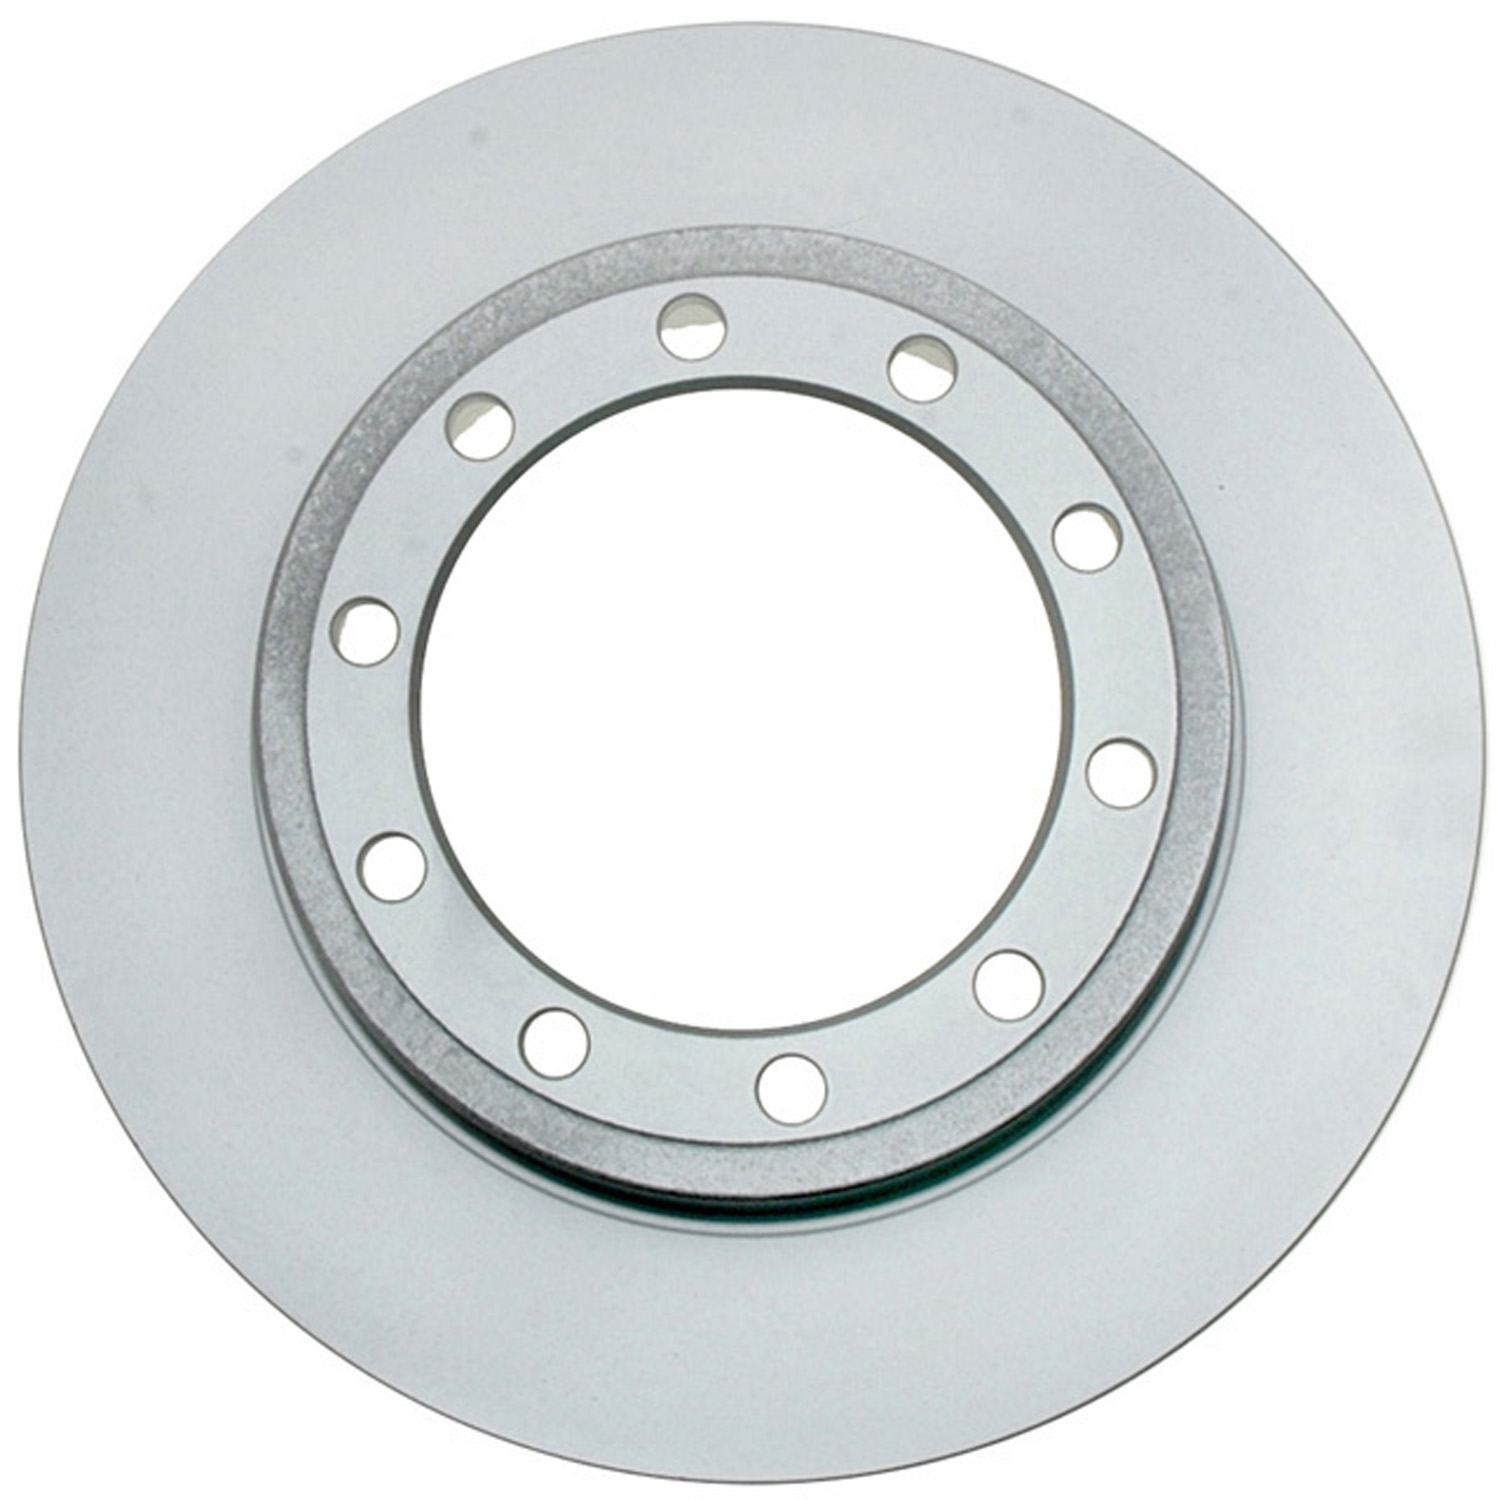 ACDELCO PROFESSIONAL BRAKES - Disc Brake Rotor - ADU 18A1839